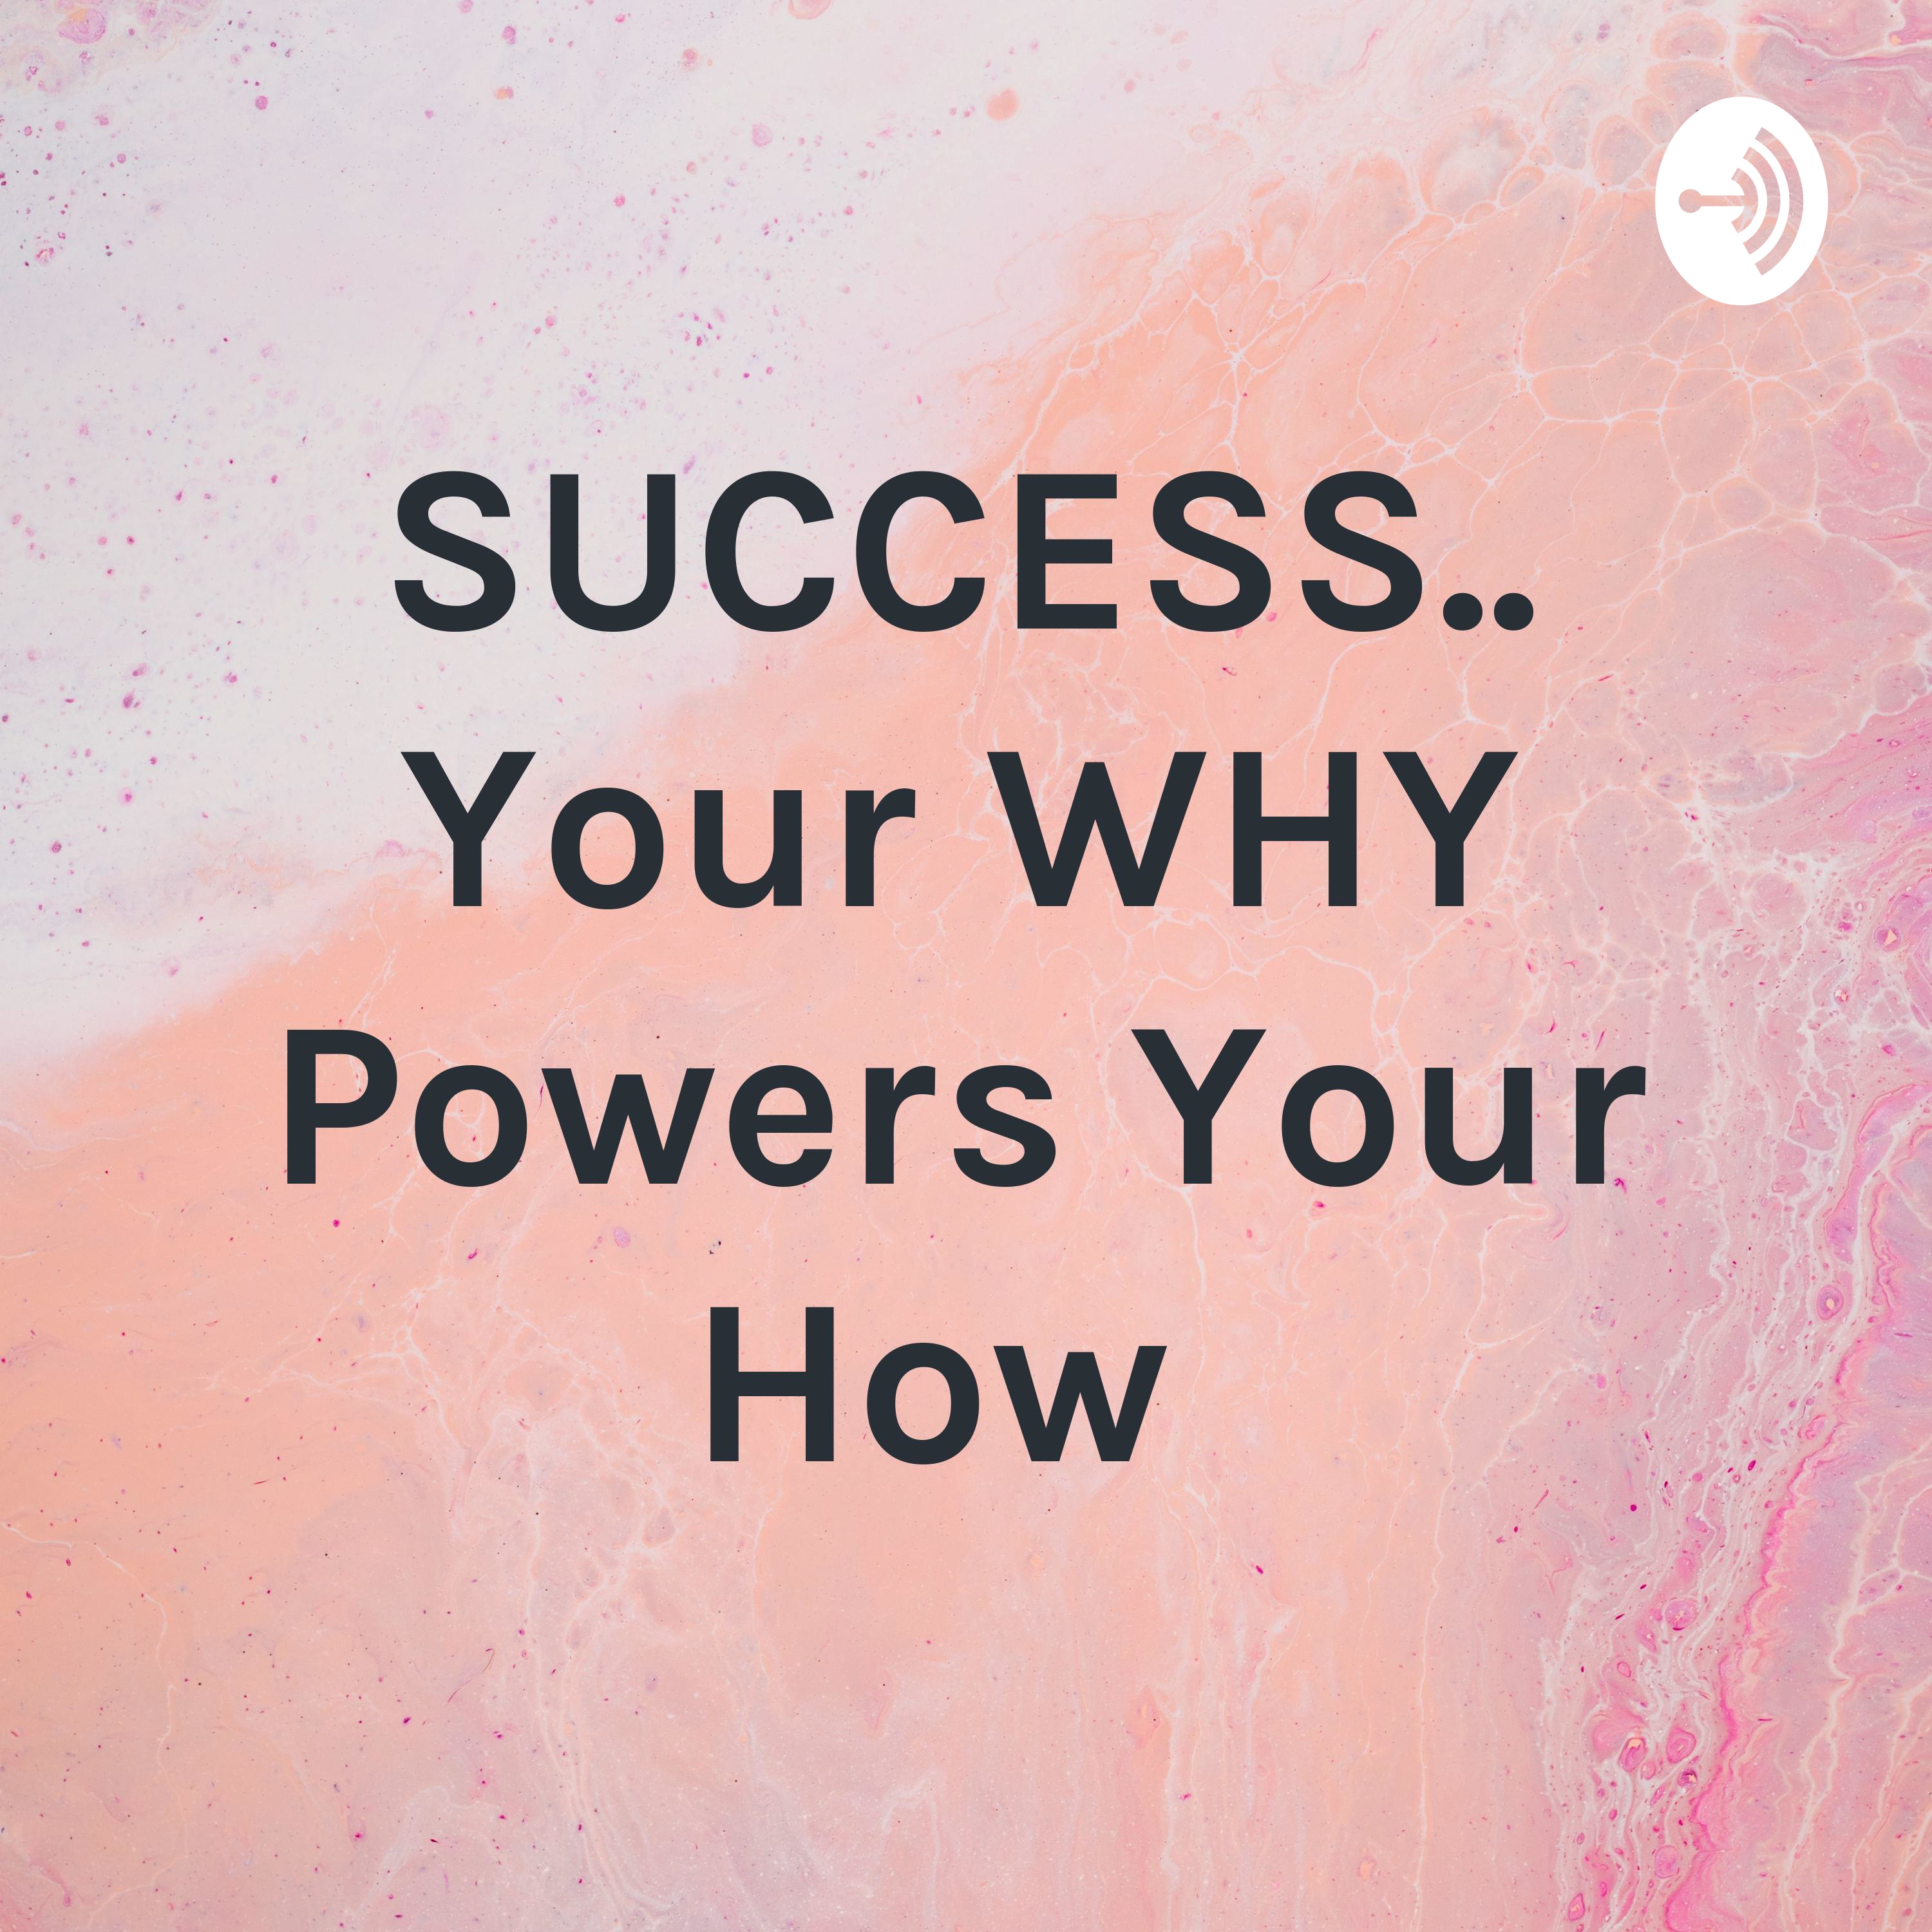 SUCCESS.. Your WHY Powers Your How